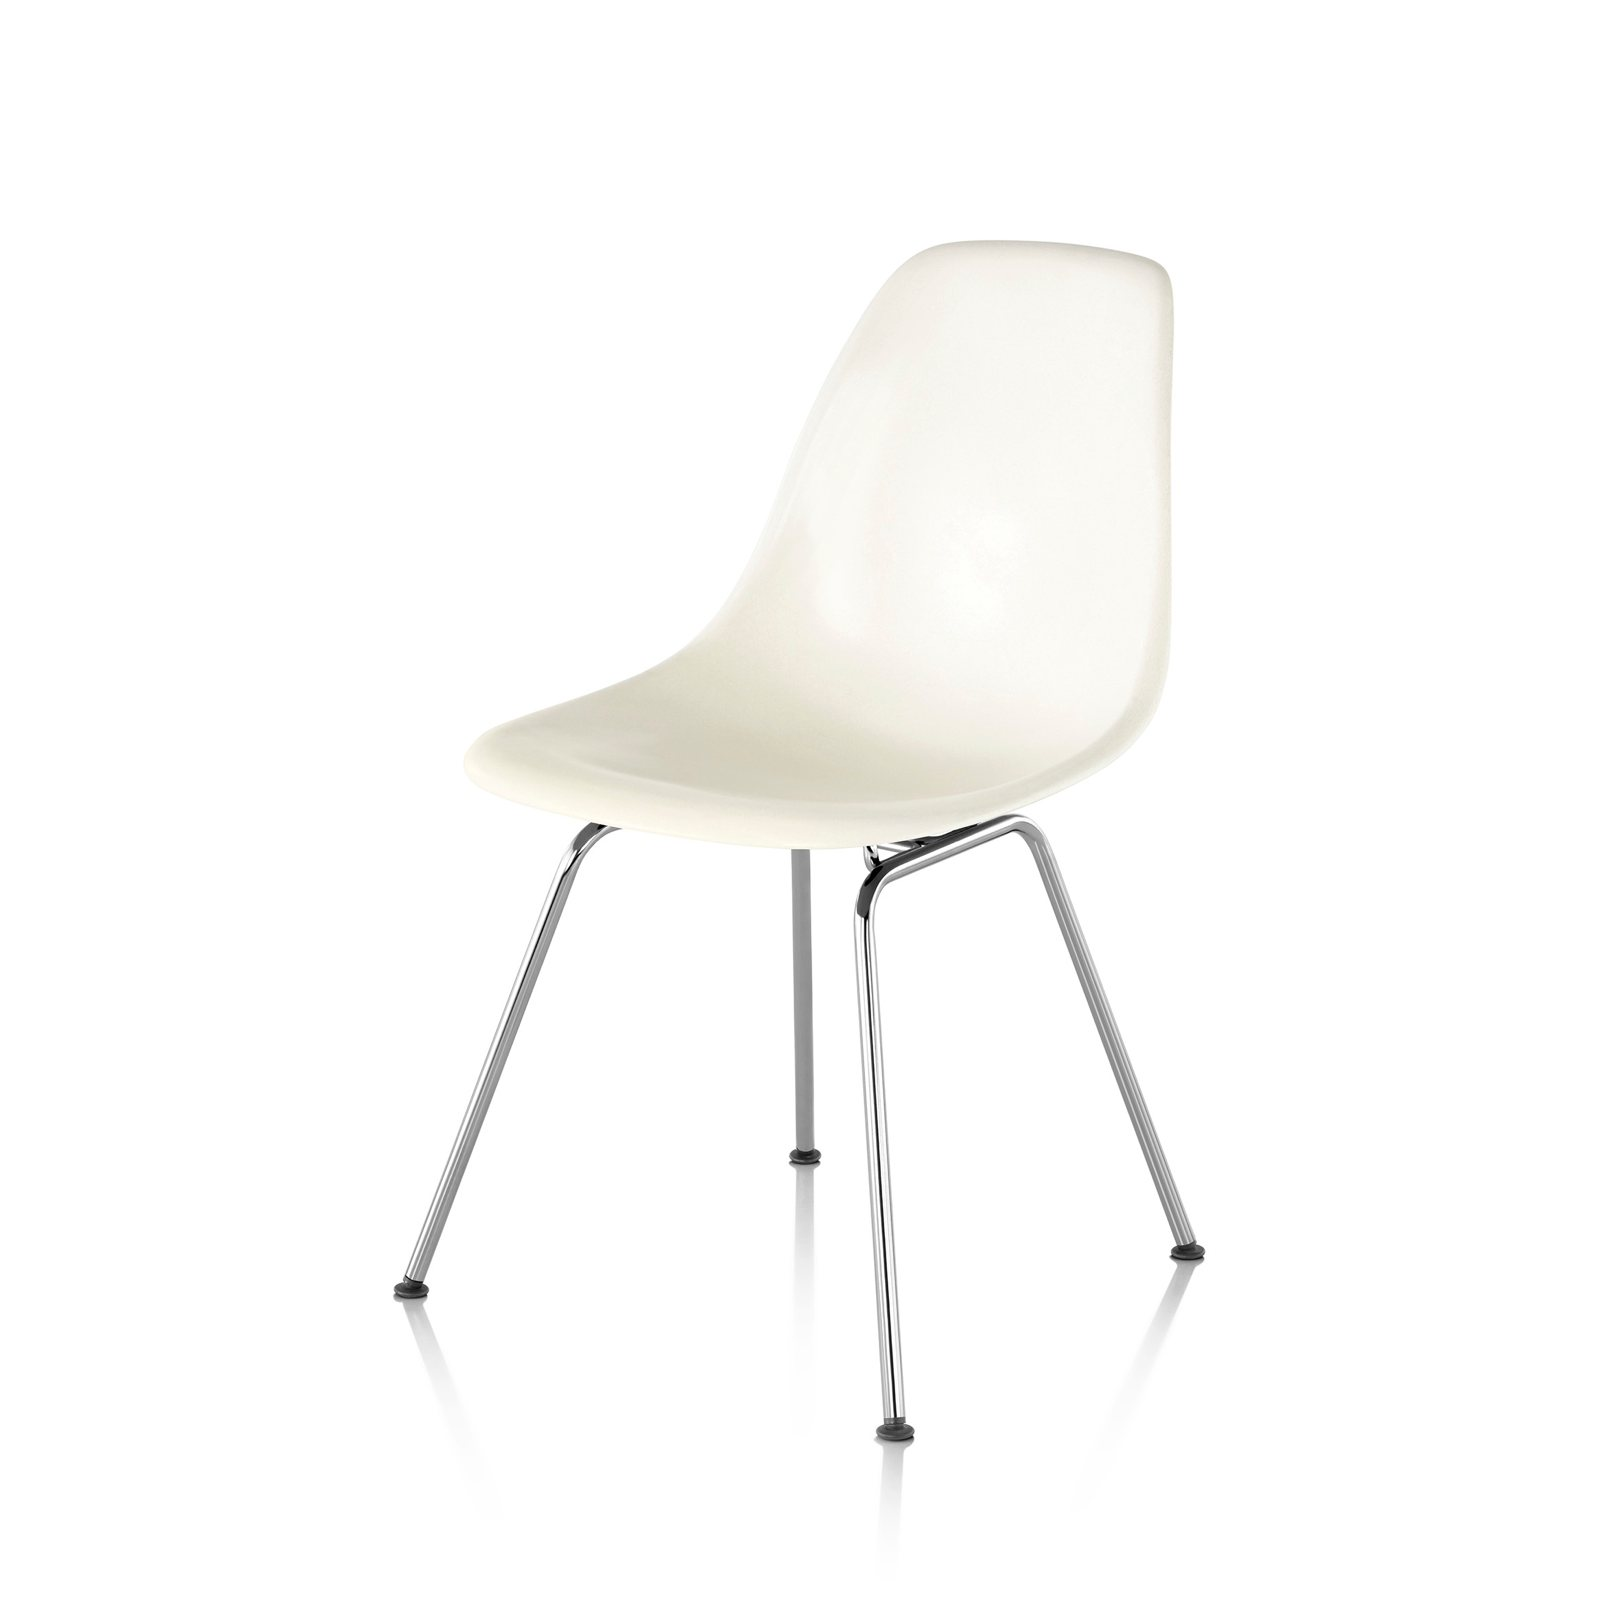 Herman Miller Eames Molded Plastic Chair herman miller eames molded plastic chair - grafill